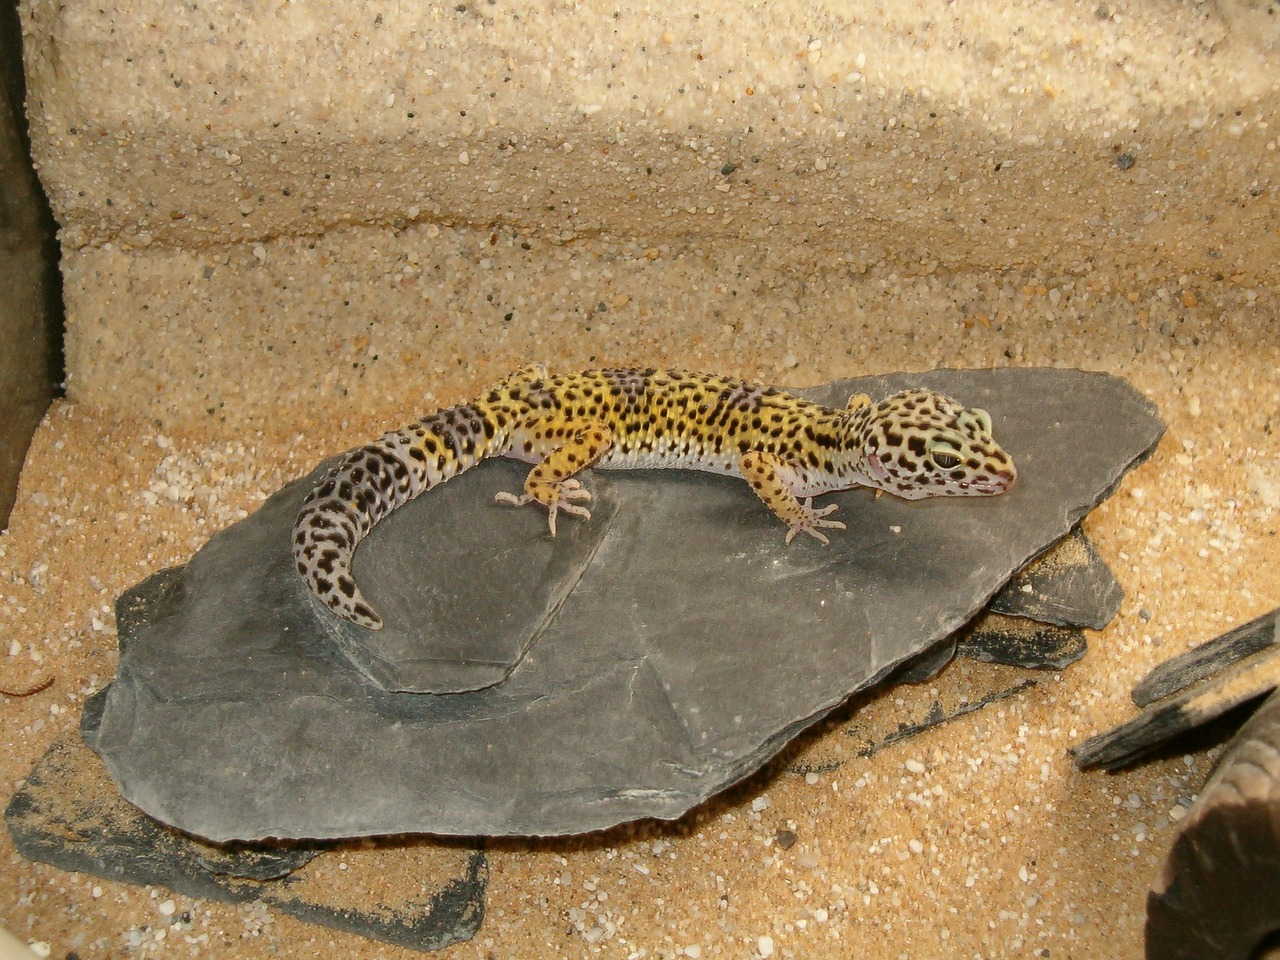 Gecko,reptiles and amphibians